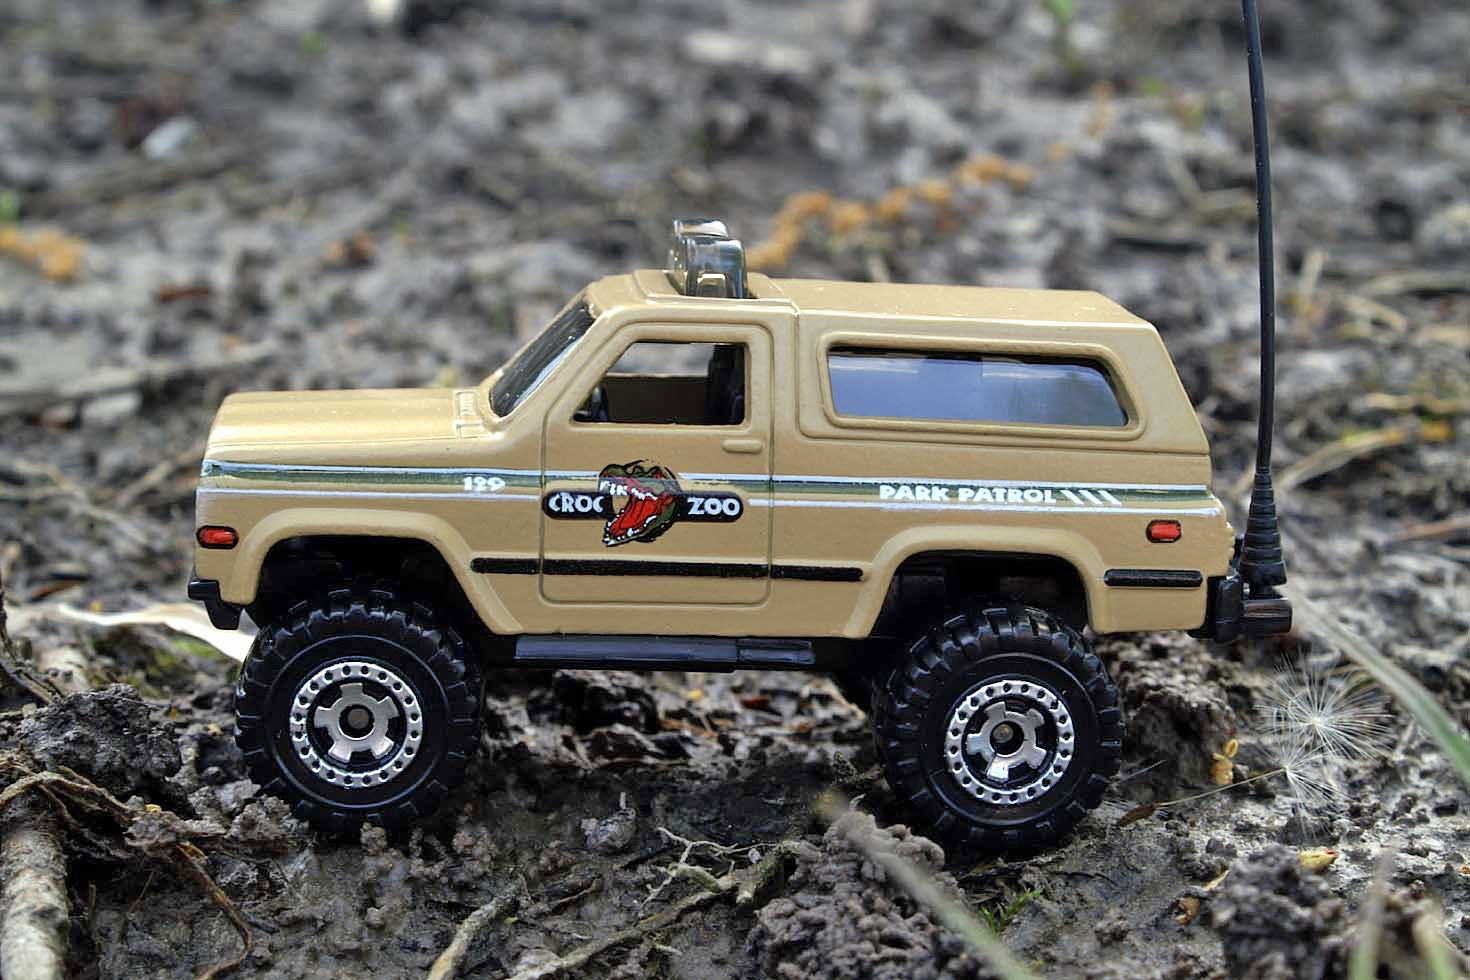 Contemporary Manufacture Toys Hobbies New 1997 Matchbox 4x4 Chevy Blazer 22 Of 75 Off Road Patrol Police